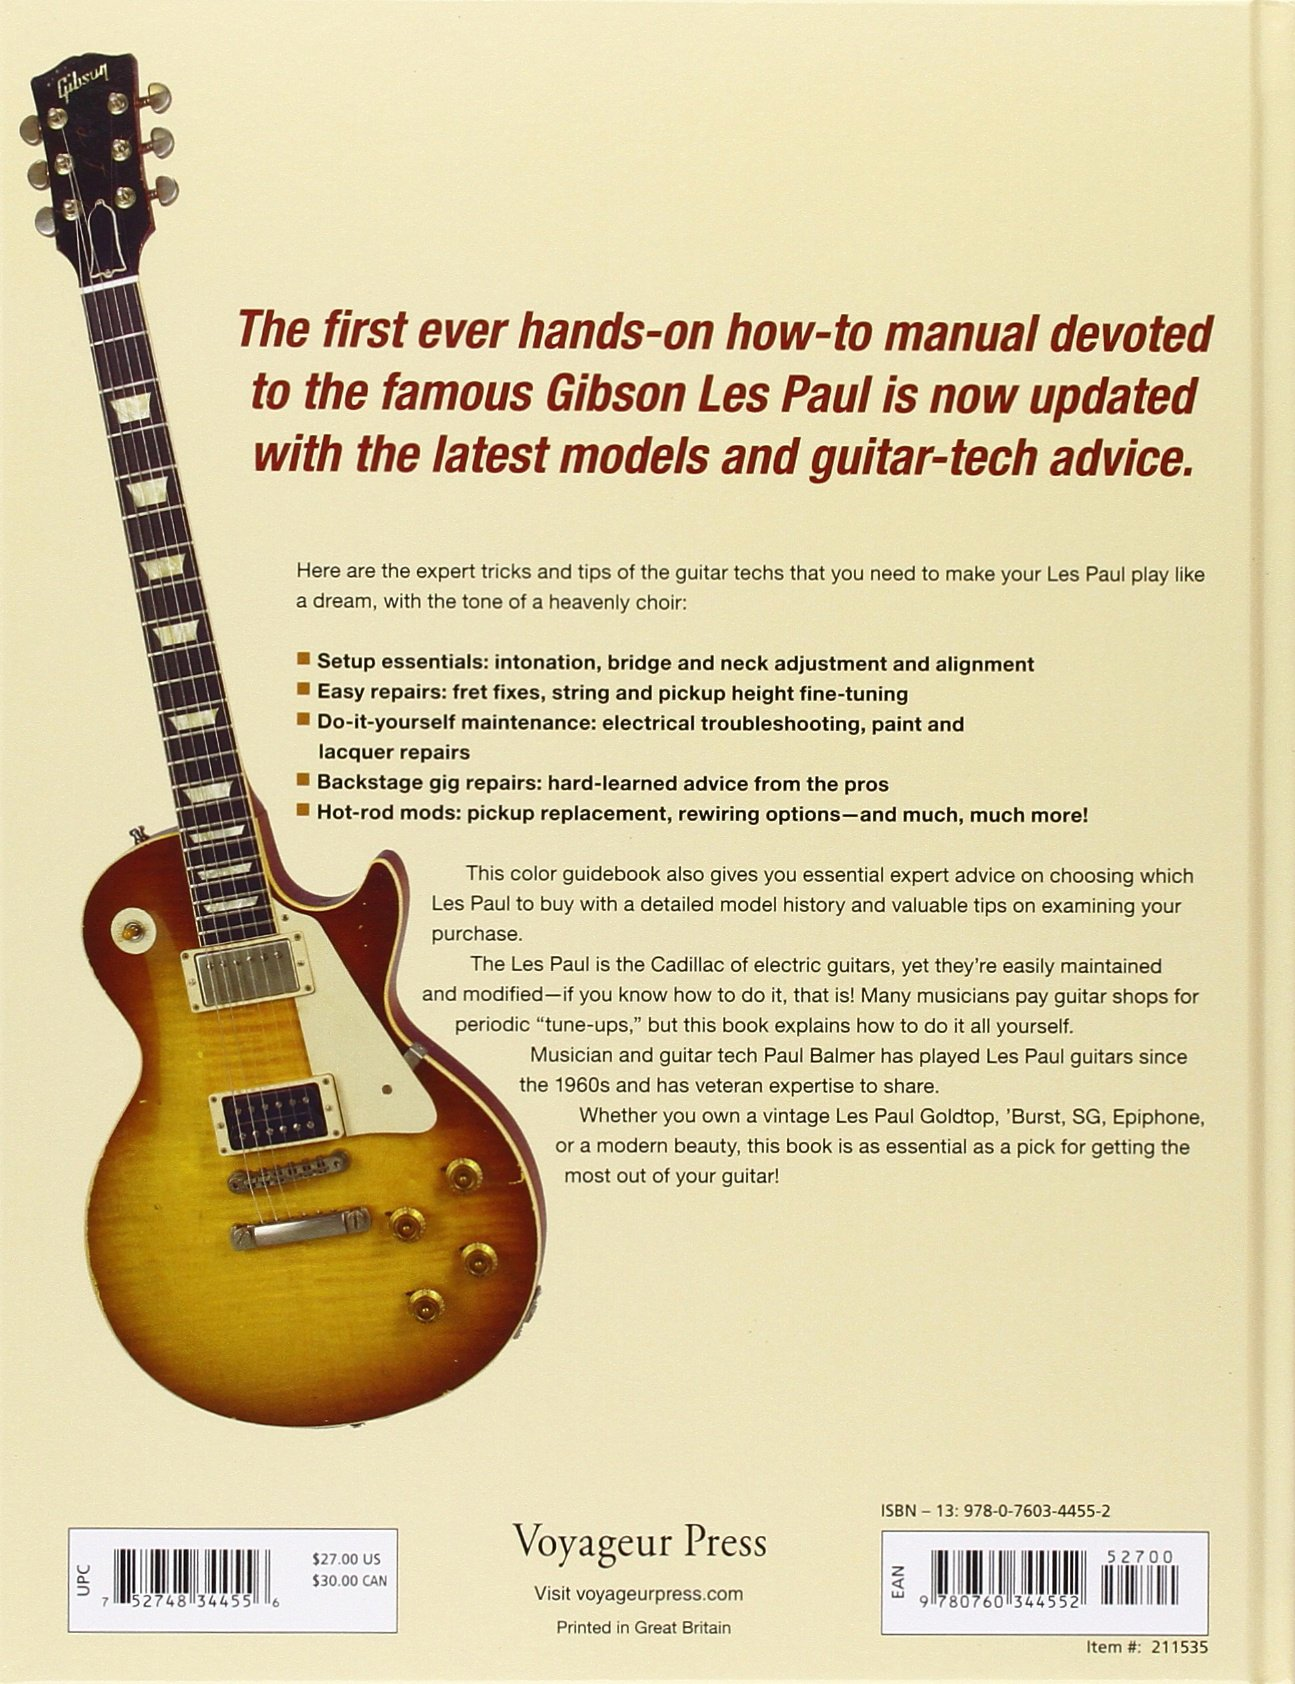 The Gibson Les Paul Handbook - New Edition: How To Buy, Maintain ...